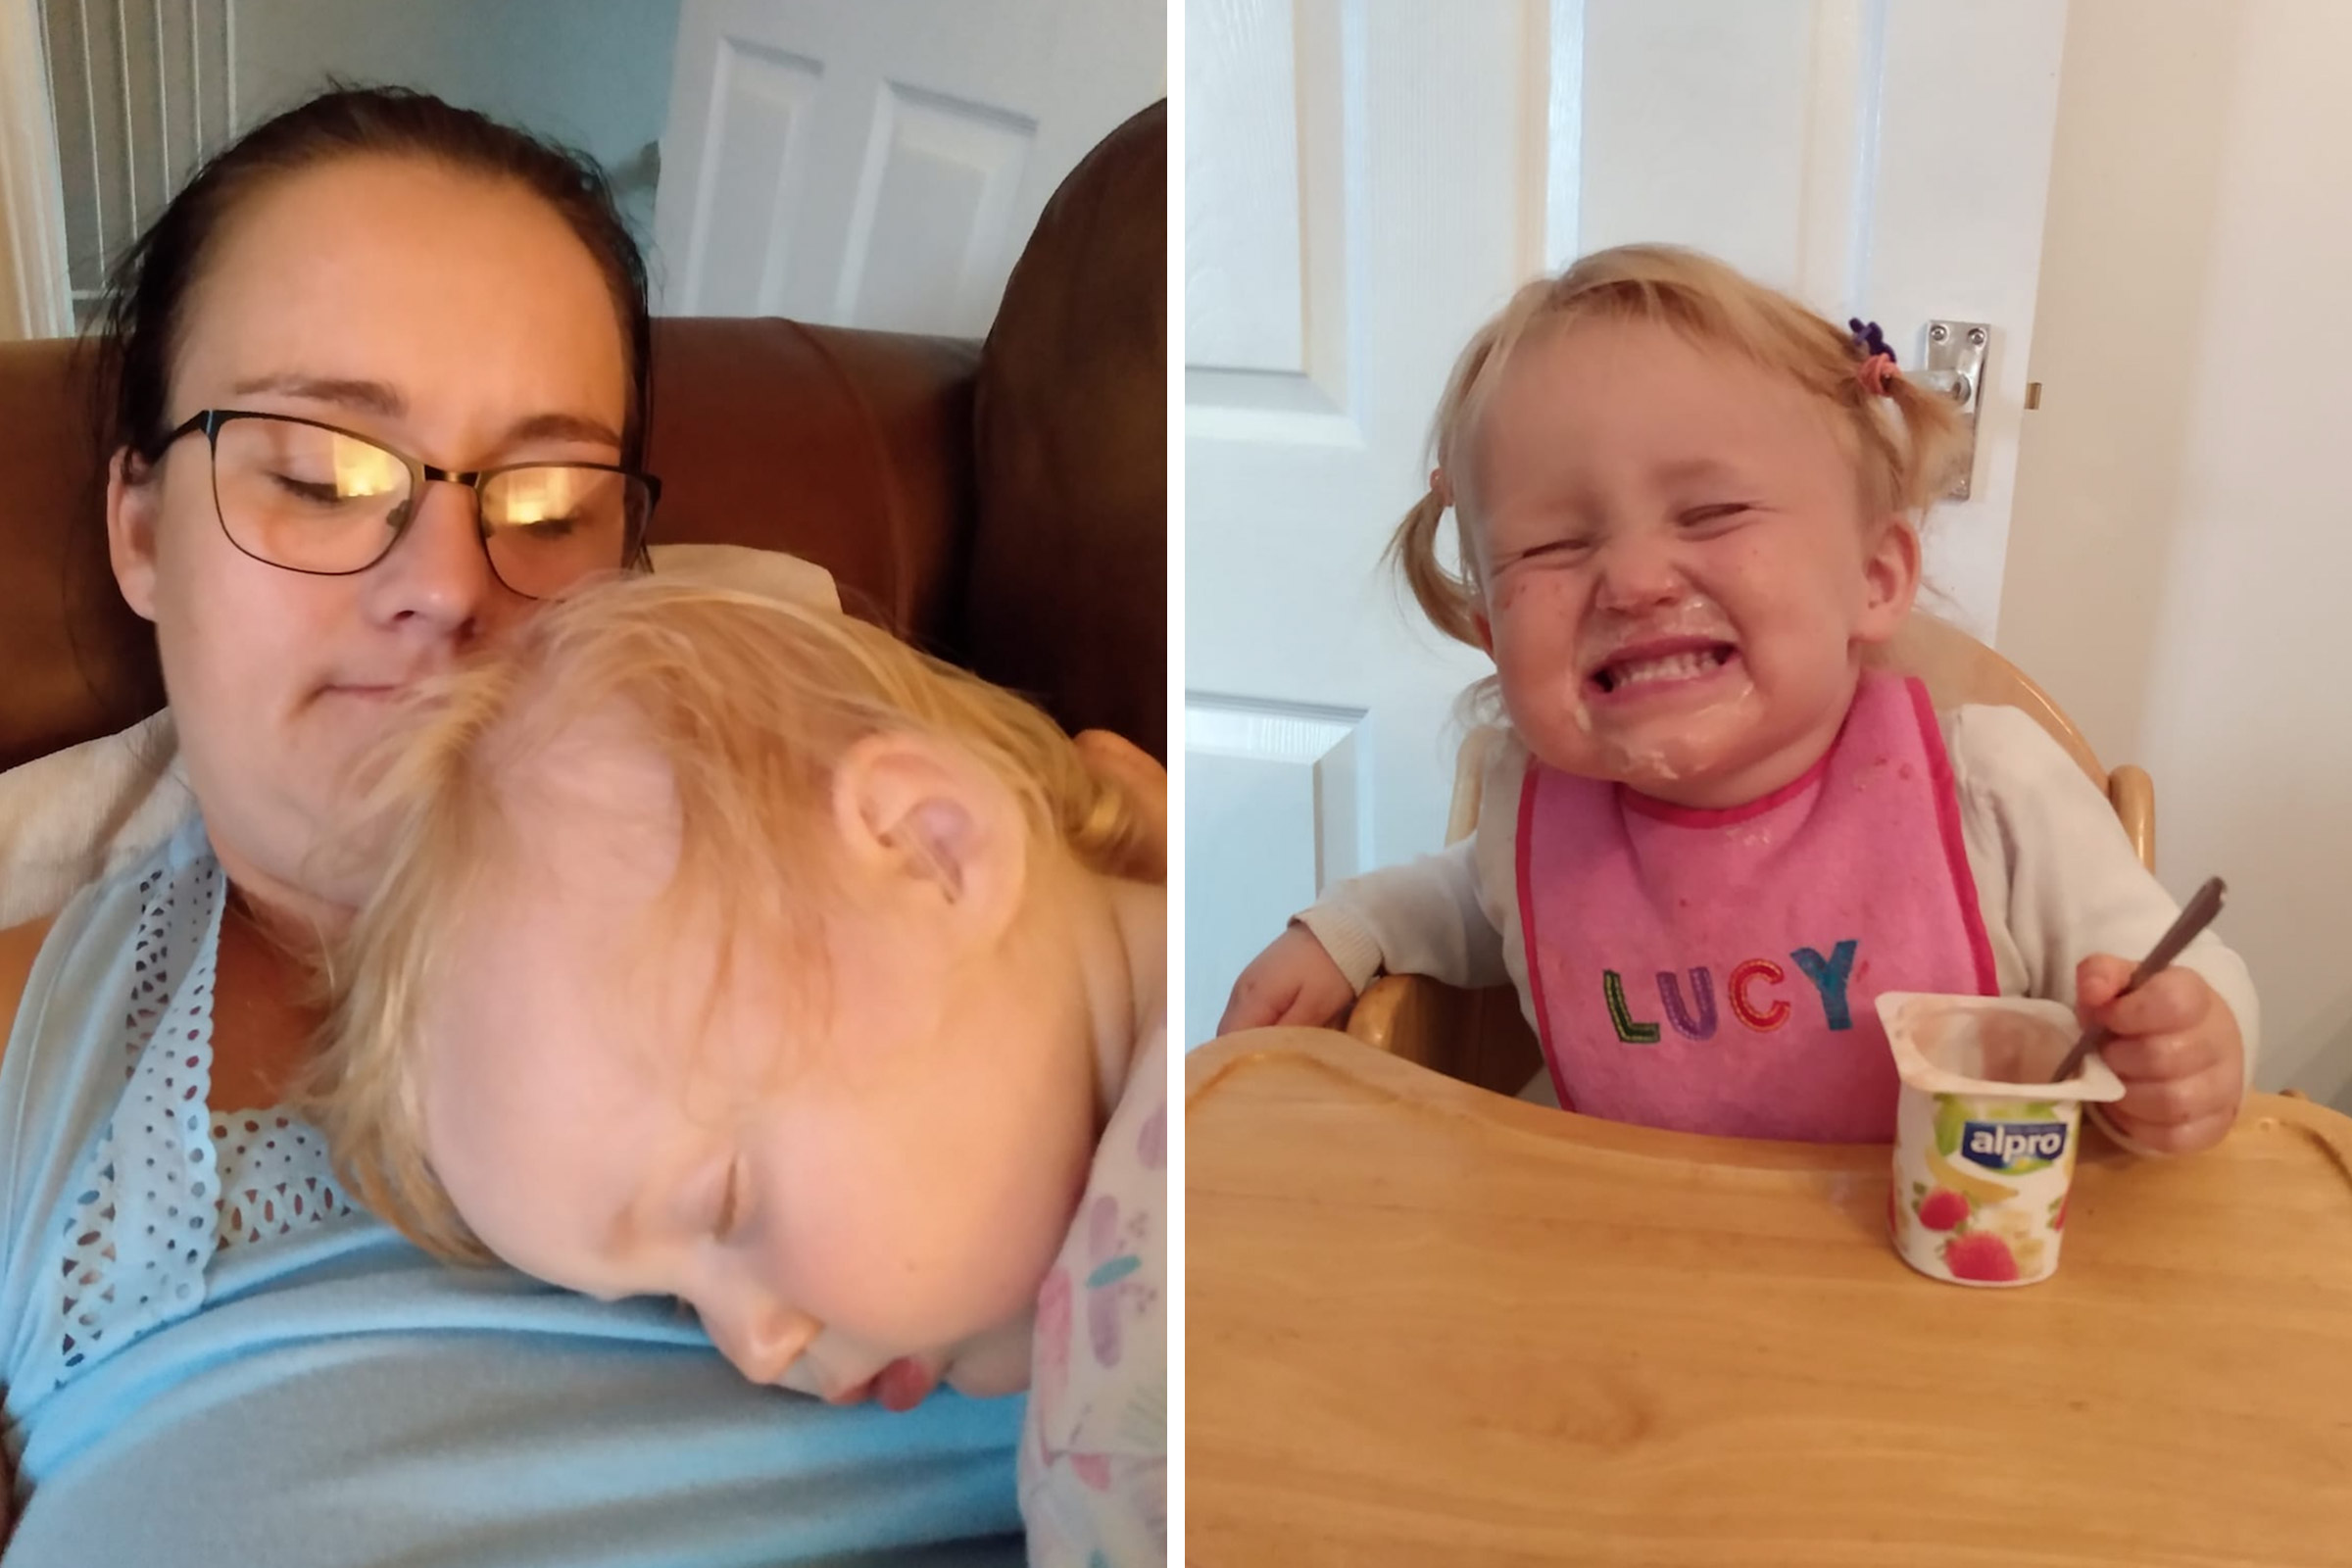 Lindsay Dutton's two year old daughter, Lucy, faced deportation from the U.K.